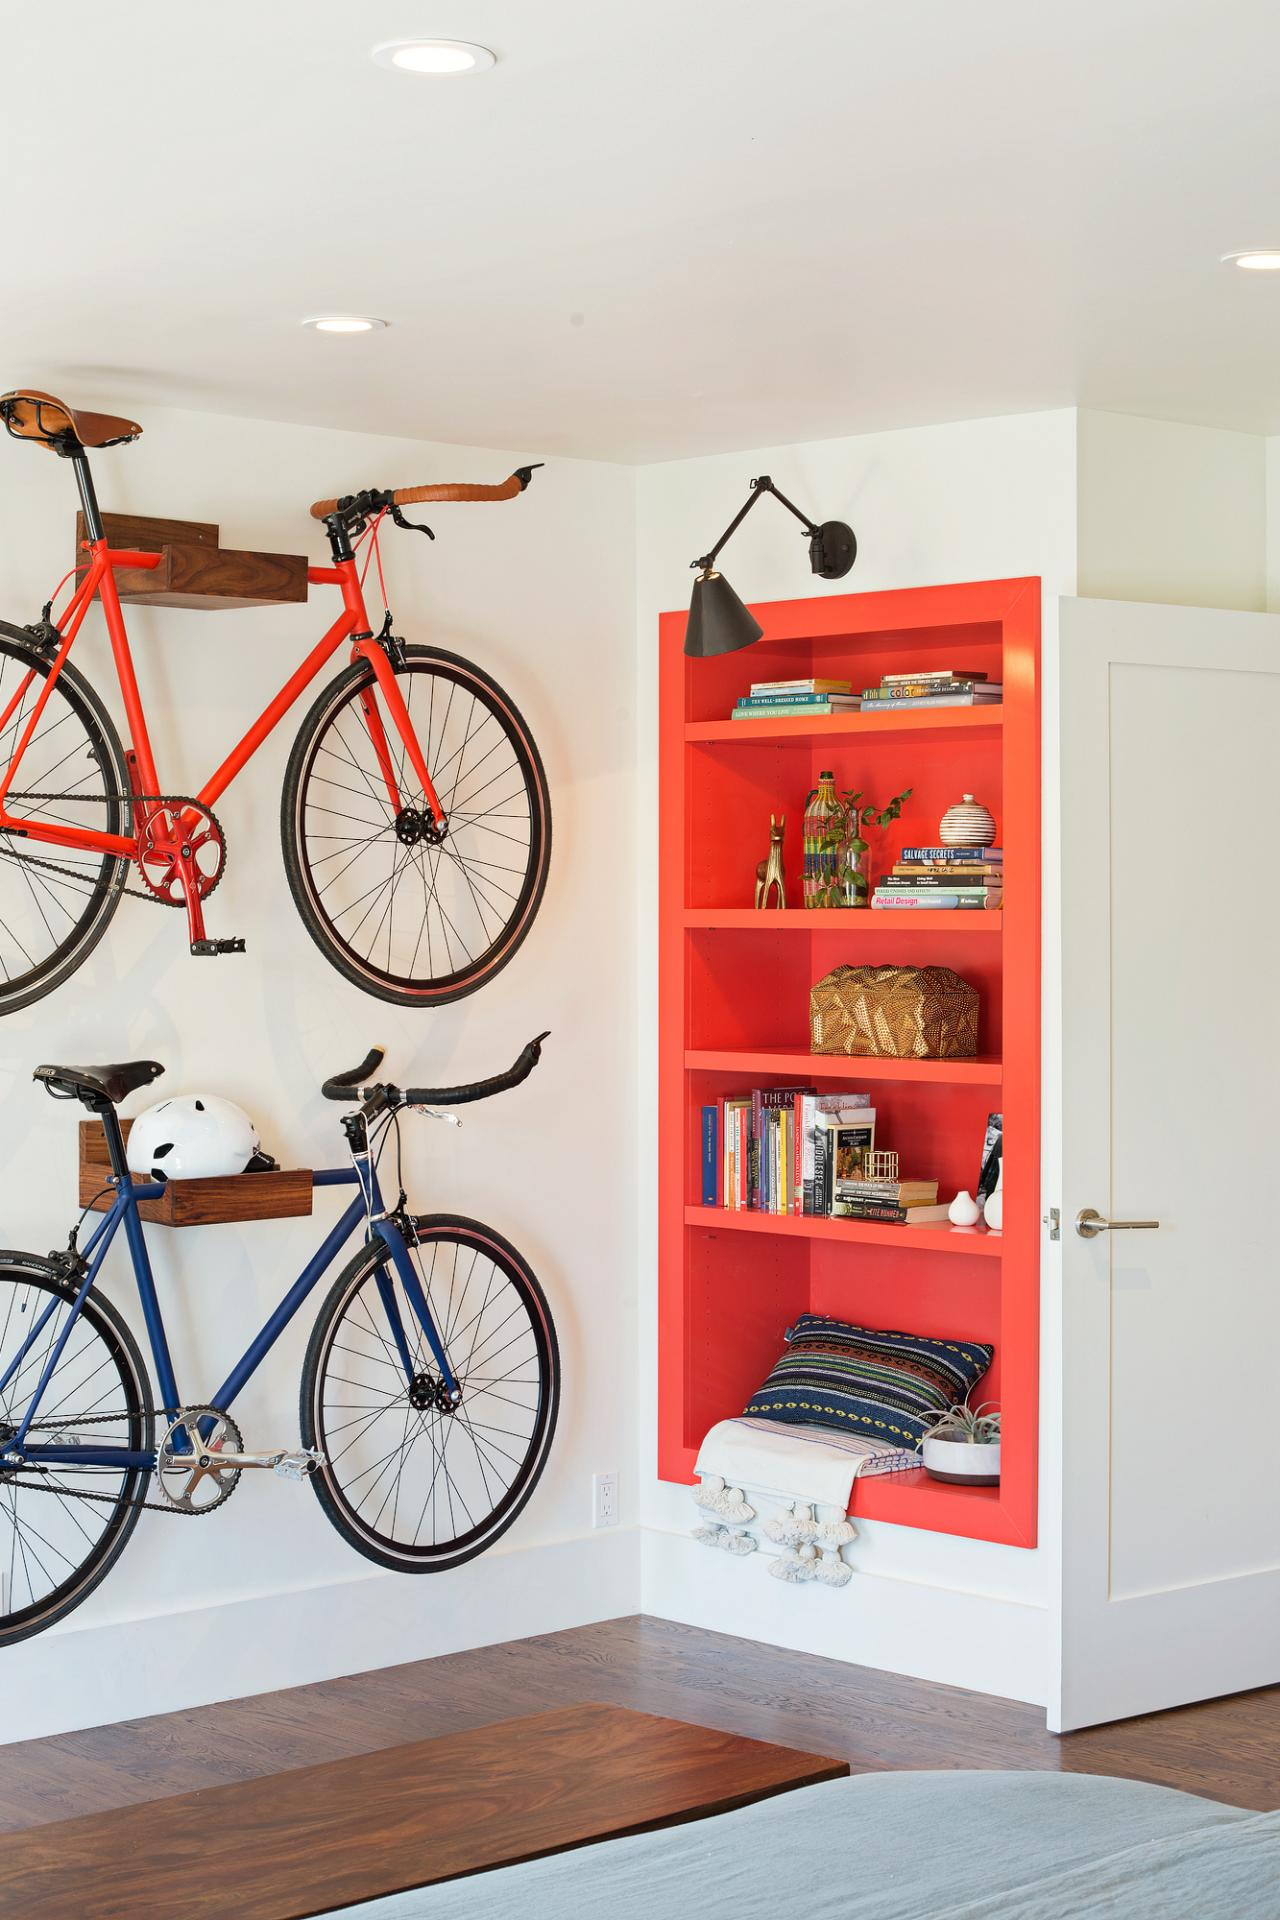 Bike Storage Is Functional and Decorative in Hip Bedroom